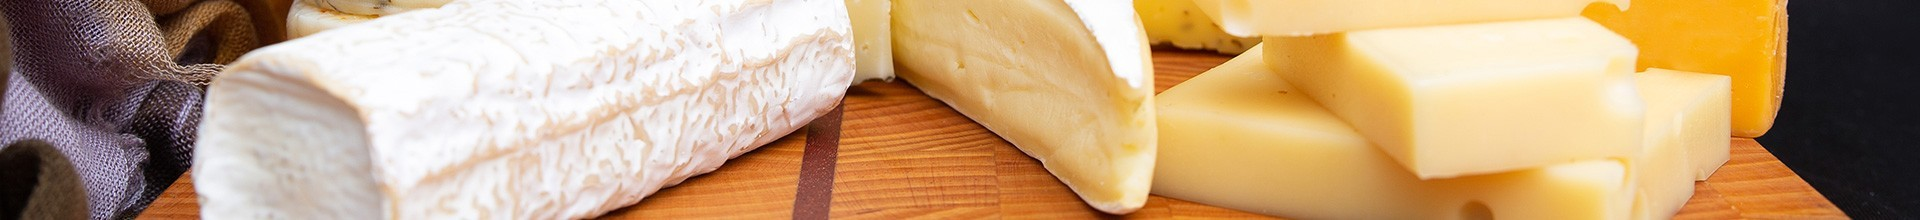 Les yaourts & fromages blancs